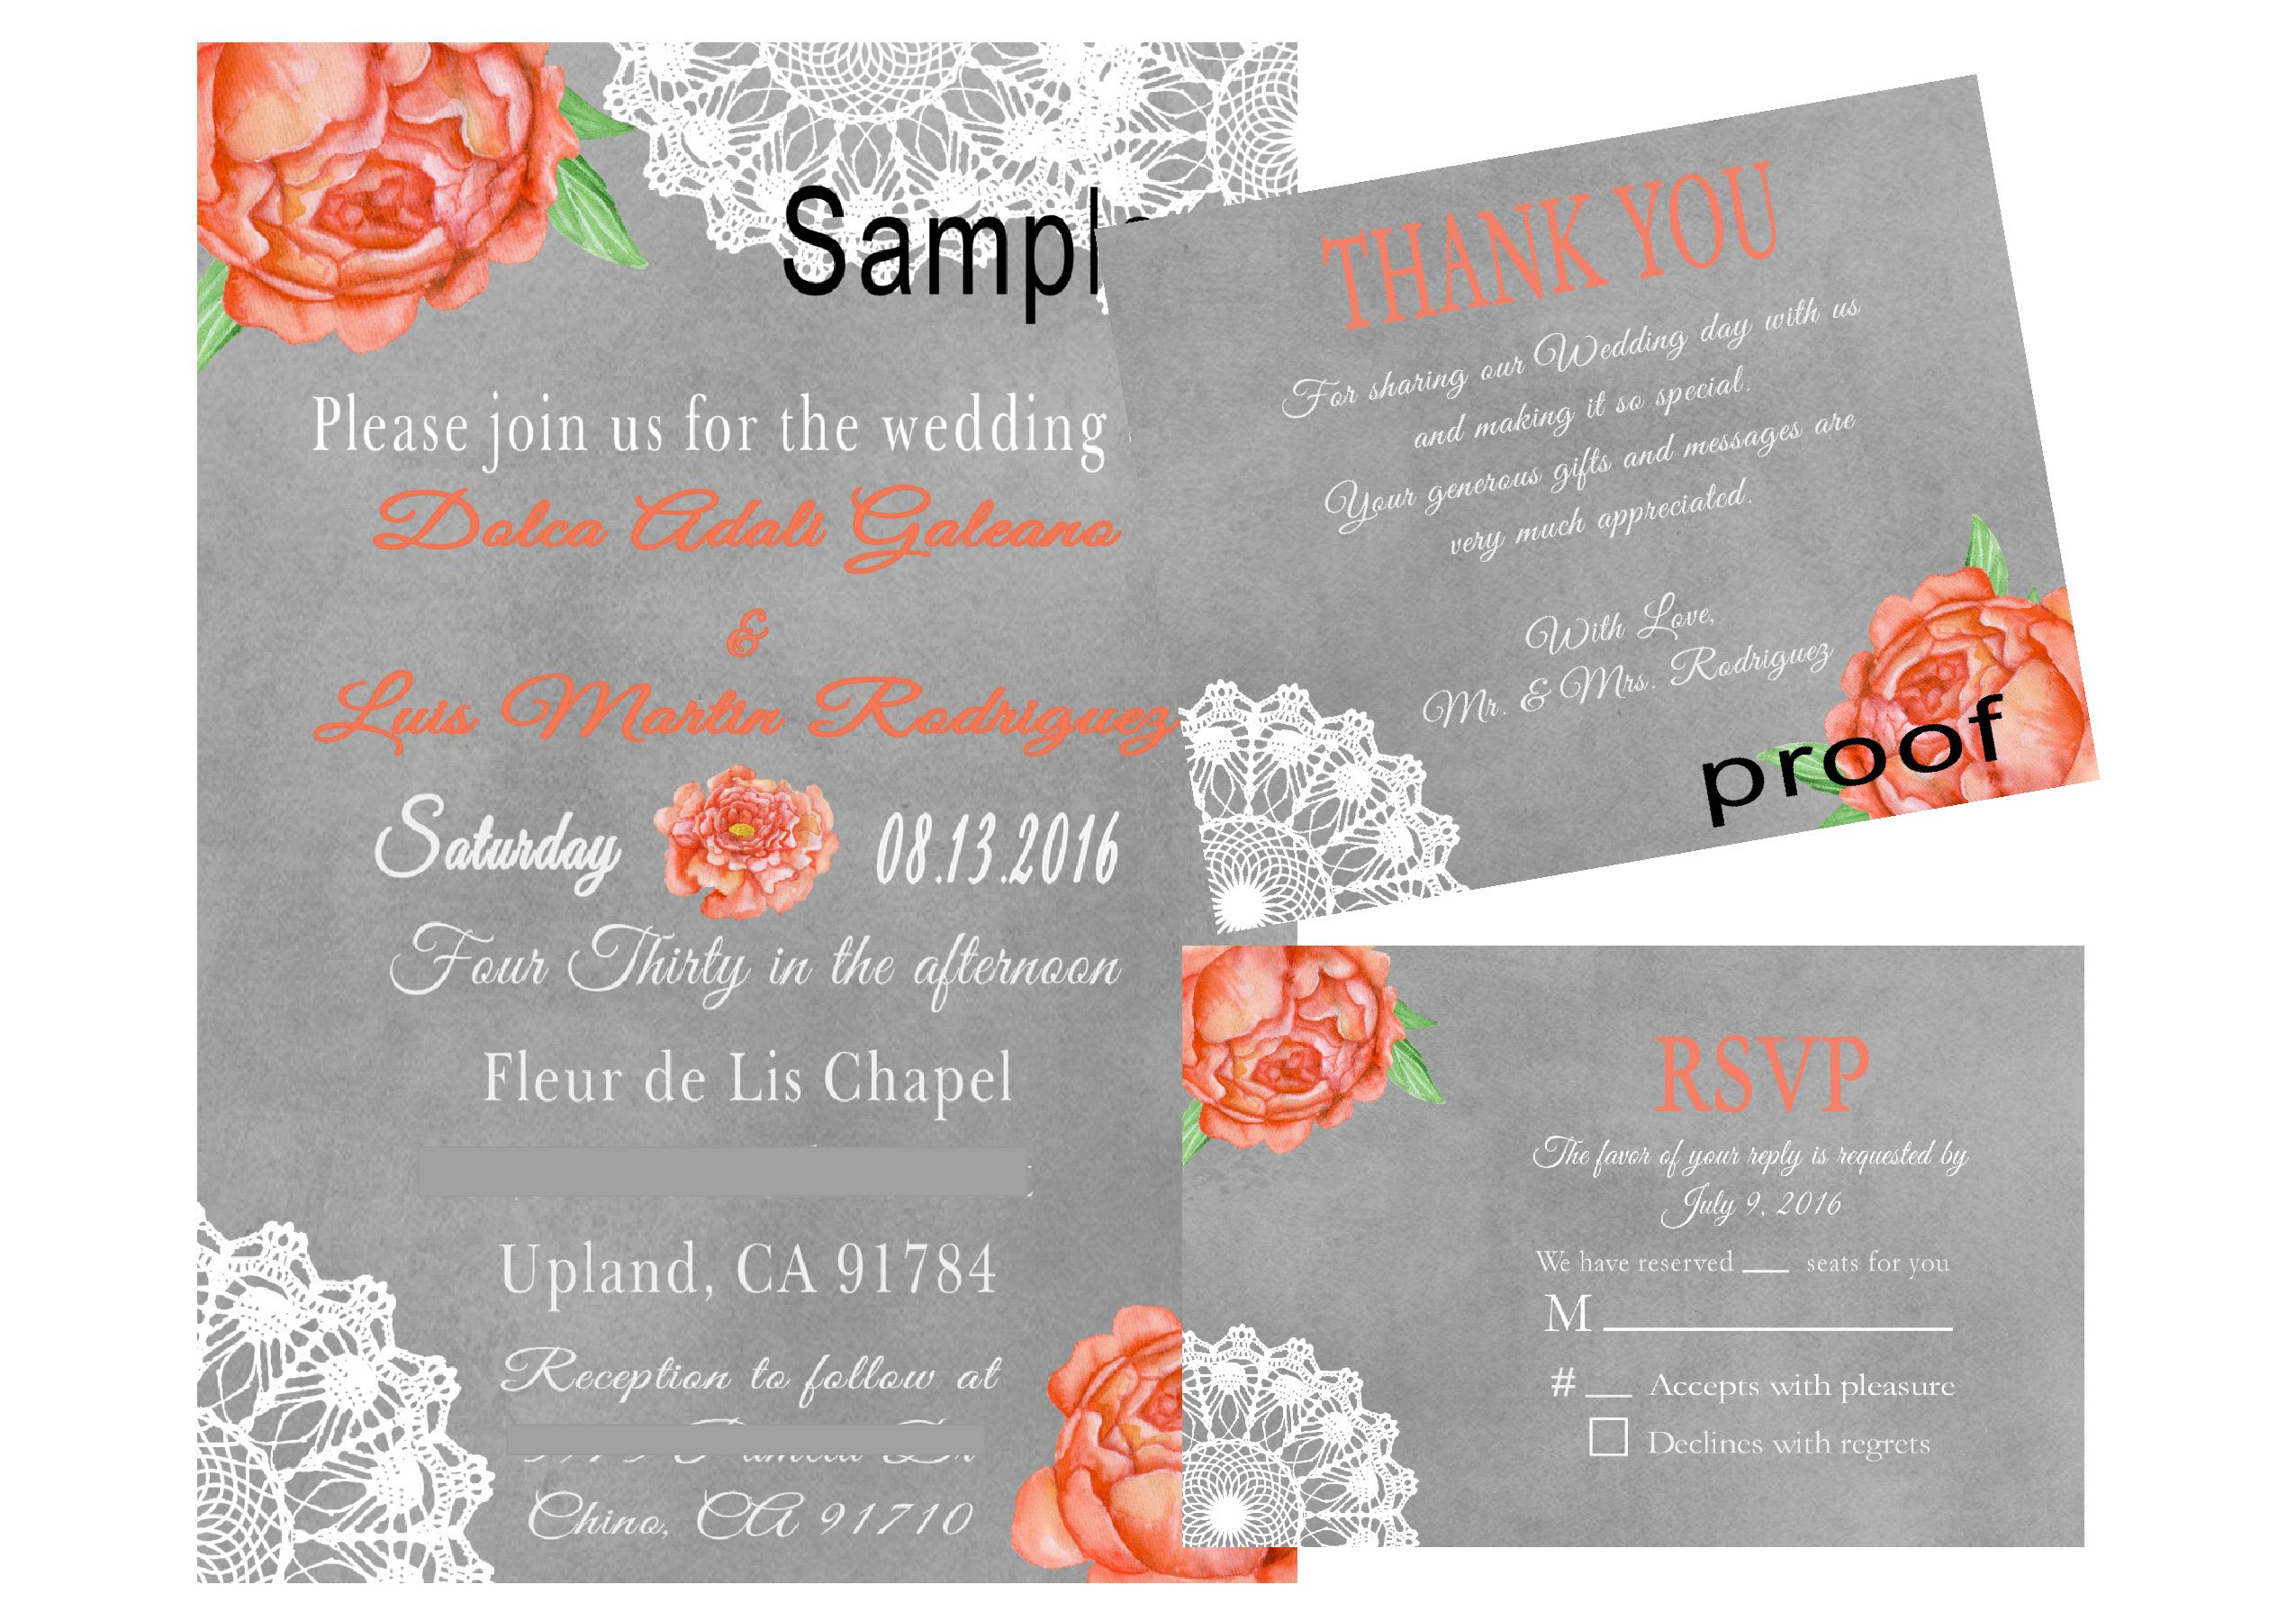 Coral Peony's, Lace Wedding Invitation & RSVP card